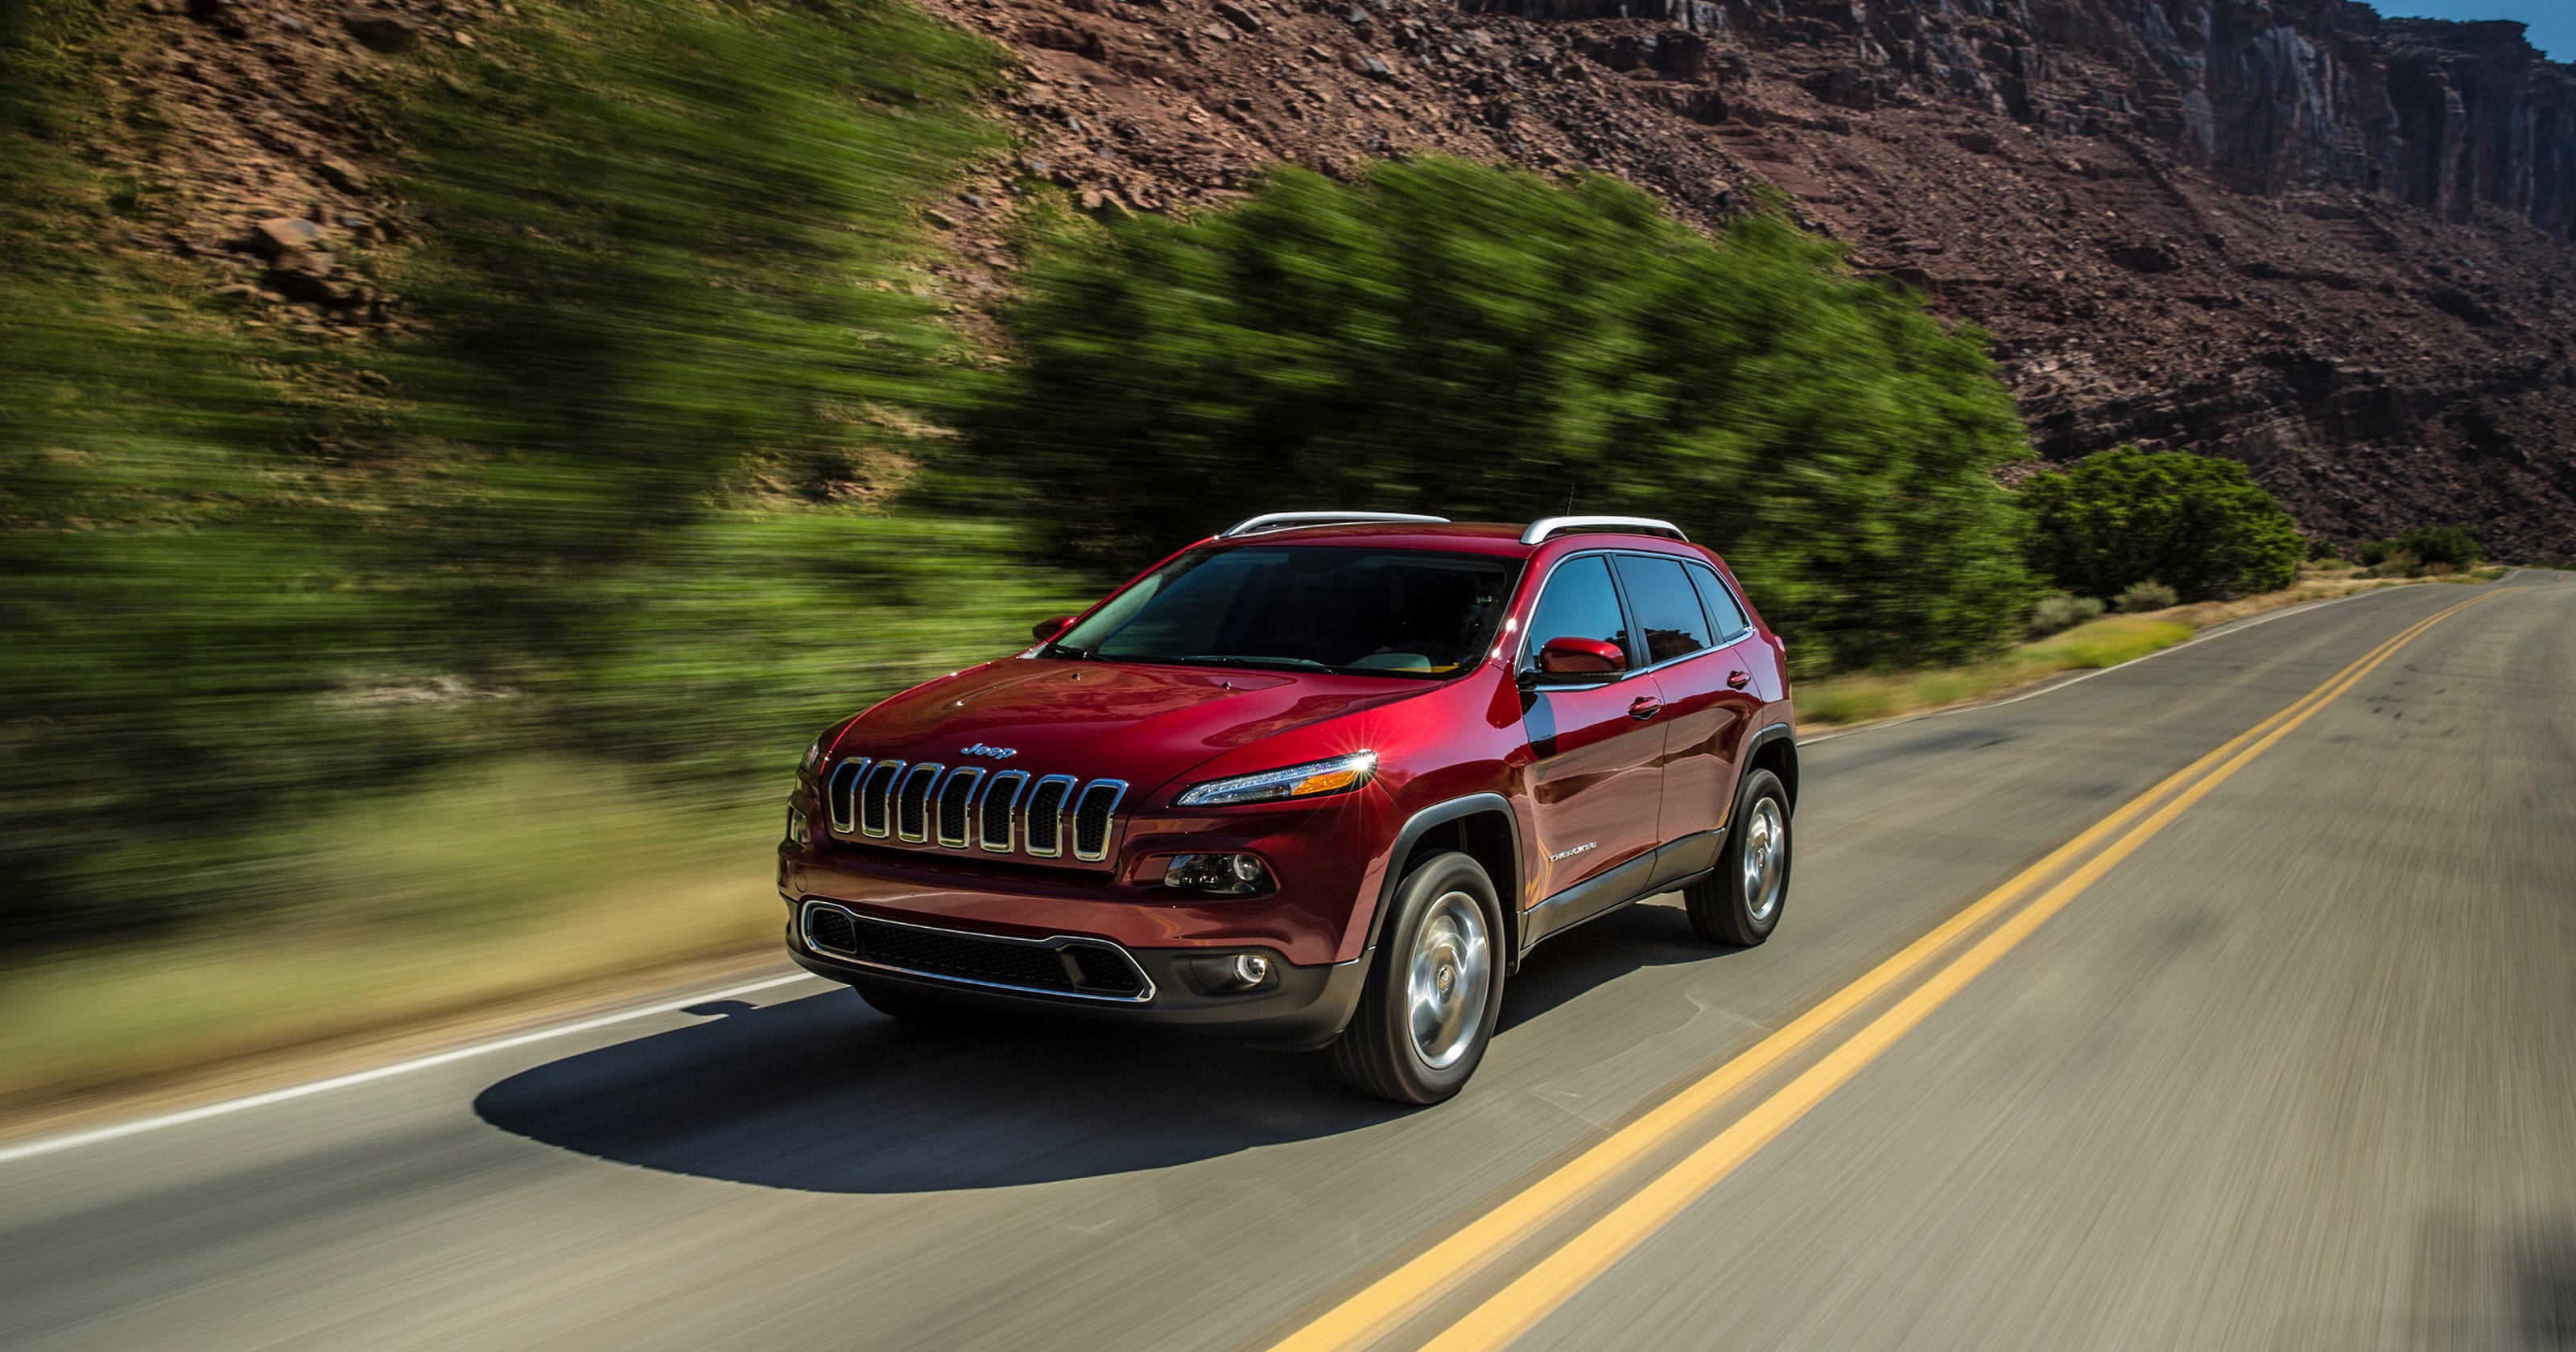 Fiat Chrysler Recalling 51k Jeep Cherokees Because Of Fire Risk